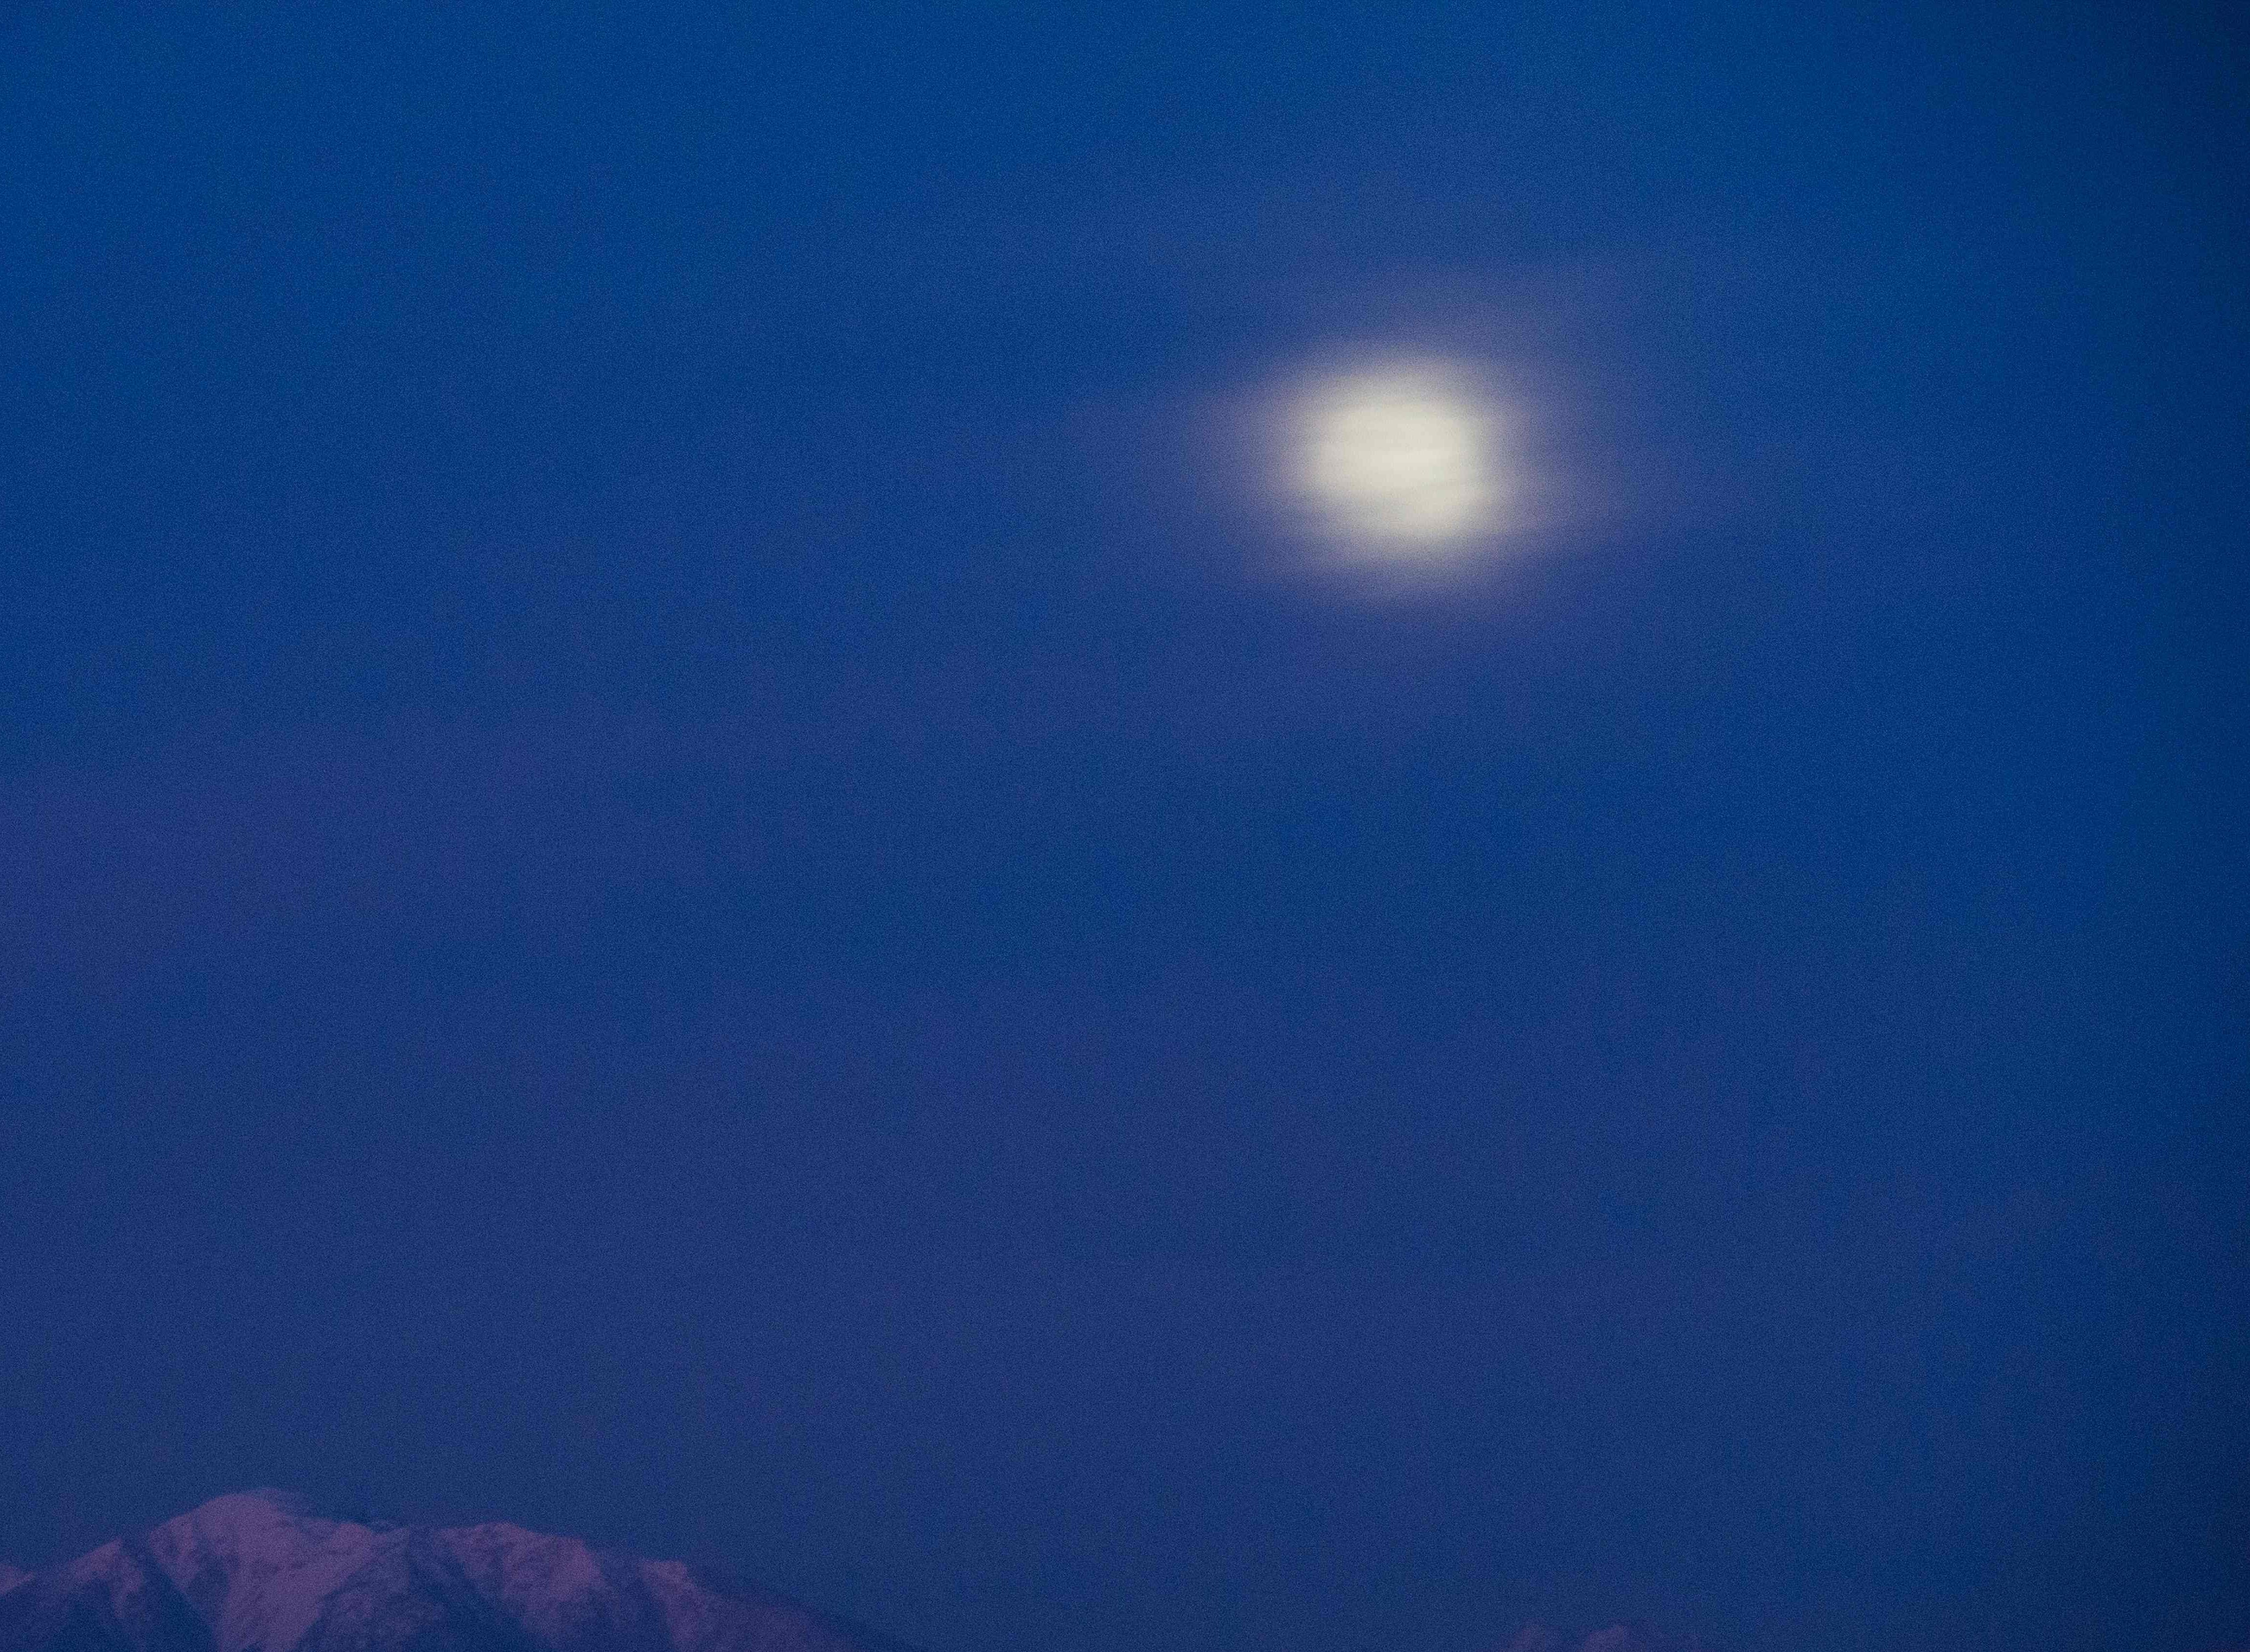 A Super Moon, partially obscured by clouds, rises over the Angeles National Forest as seen from Montecito Heights in Los Angeles, California, ahead of a total lunar eclipse, January 20, 2019. (Photo by Robyn Beck / AFP)ROBYN BECK/AFP/Getty Images